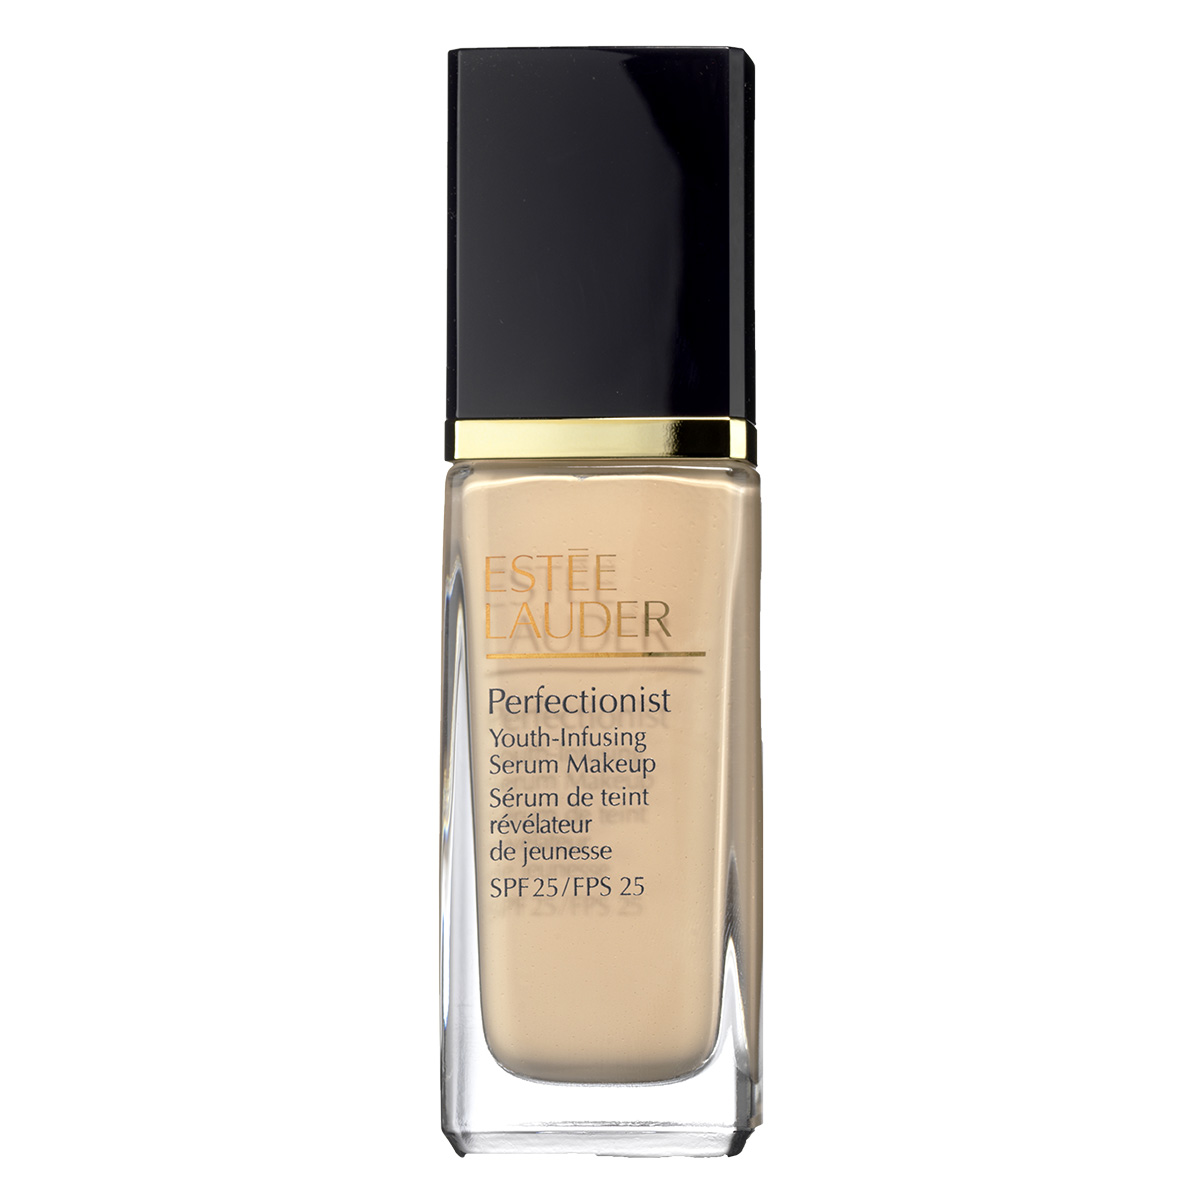 Image of   Estée Lauder Perfectionist Youth-Infusing Makeup SPF 25 - 30 ml